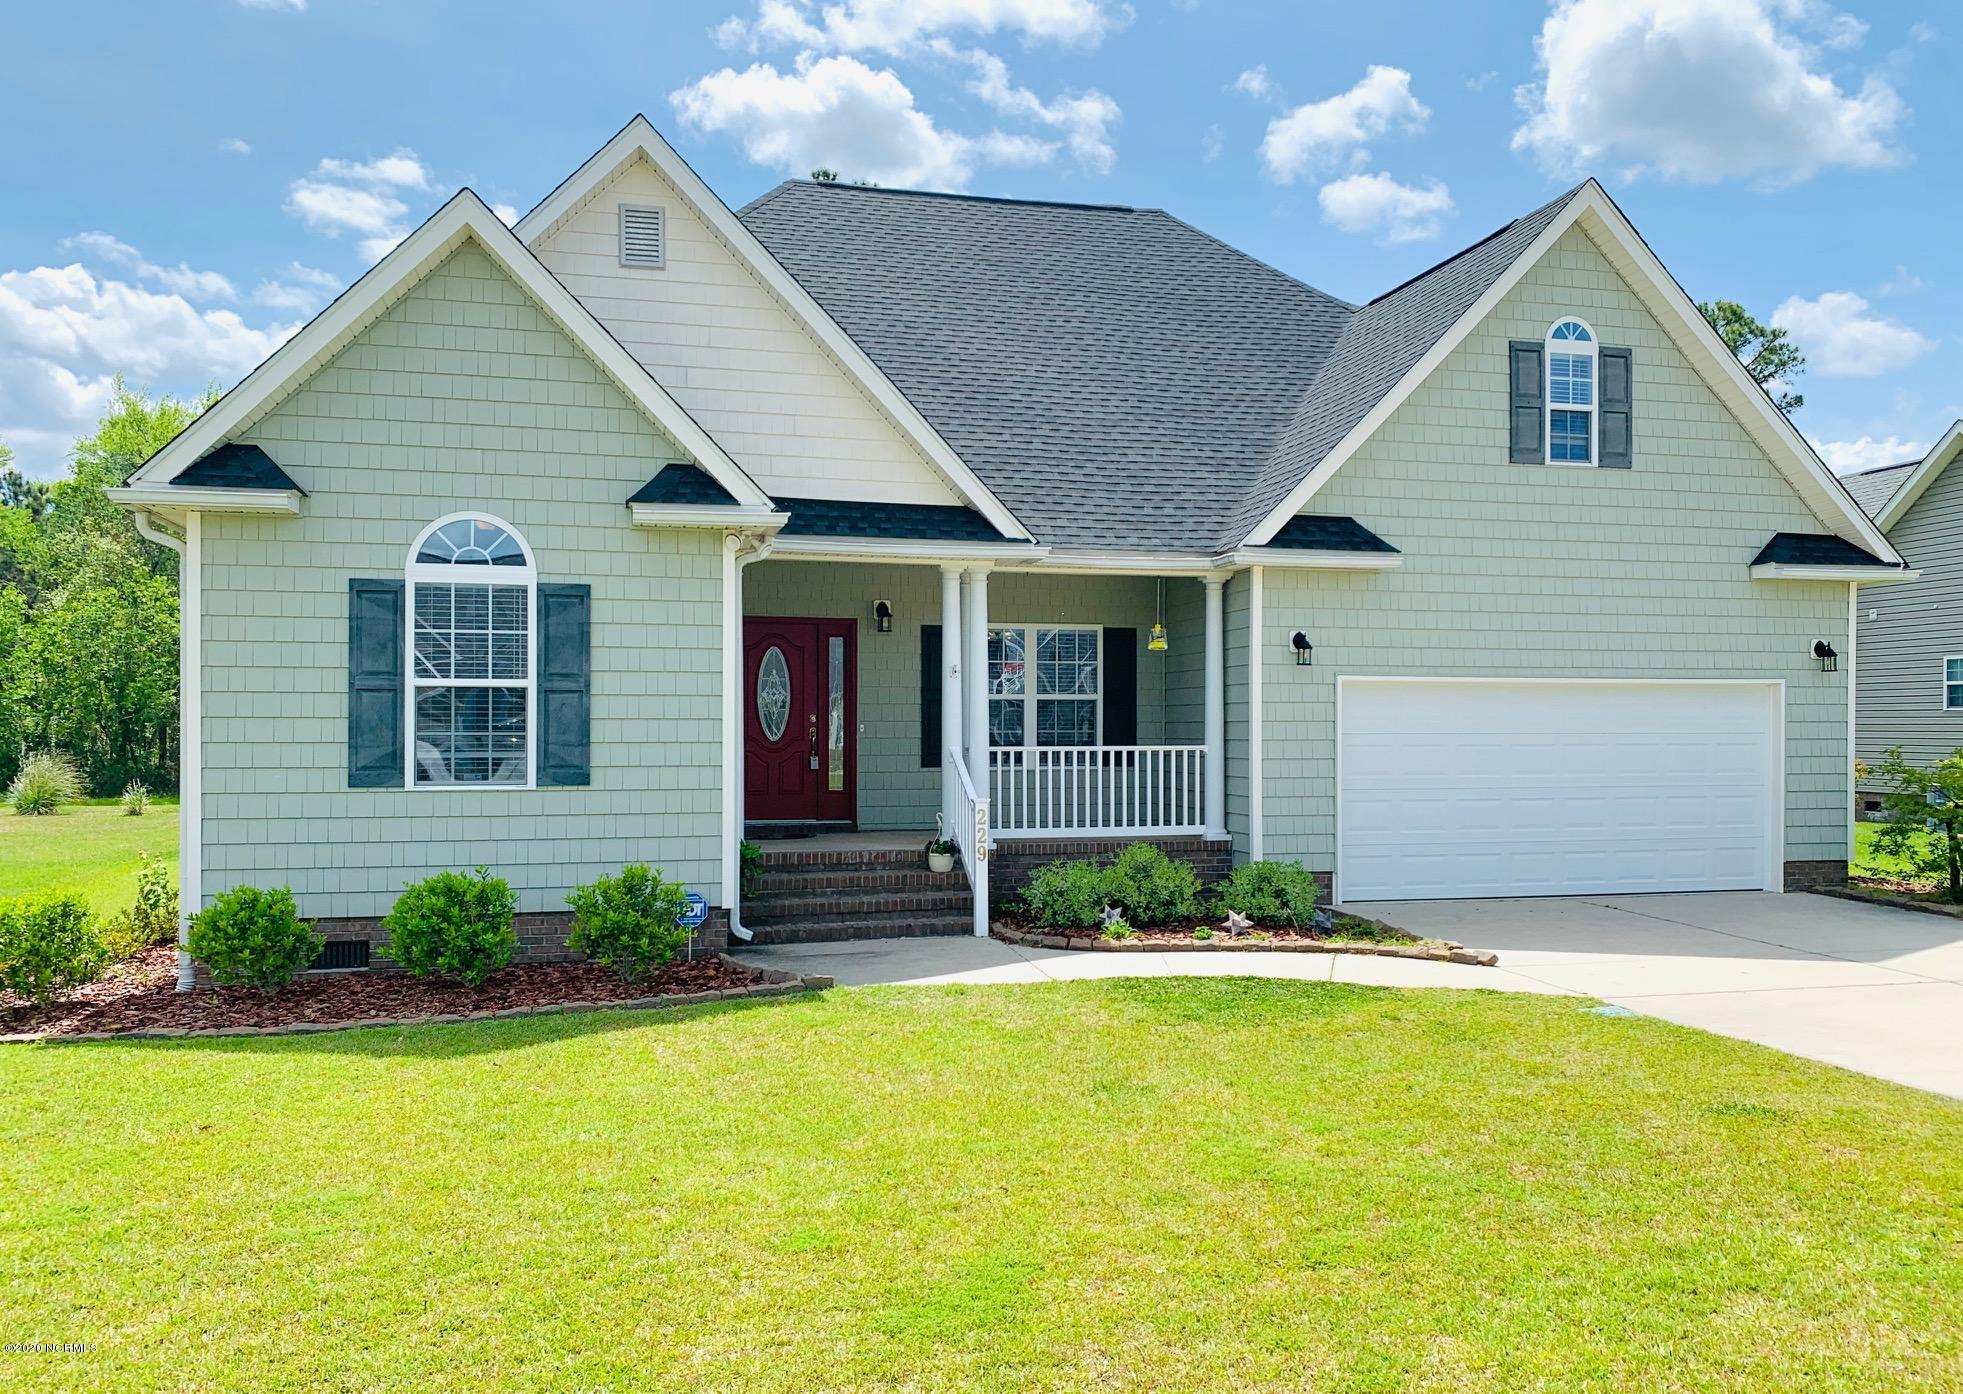 229 Wedgefield Circle, Maple Hill, North Carolina 28454, 3 Bedrooms Bedrooms, ,2 BathroomsBathrooms,Residential,For Sale,Wedgefield,100215439